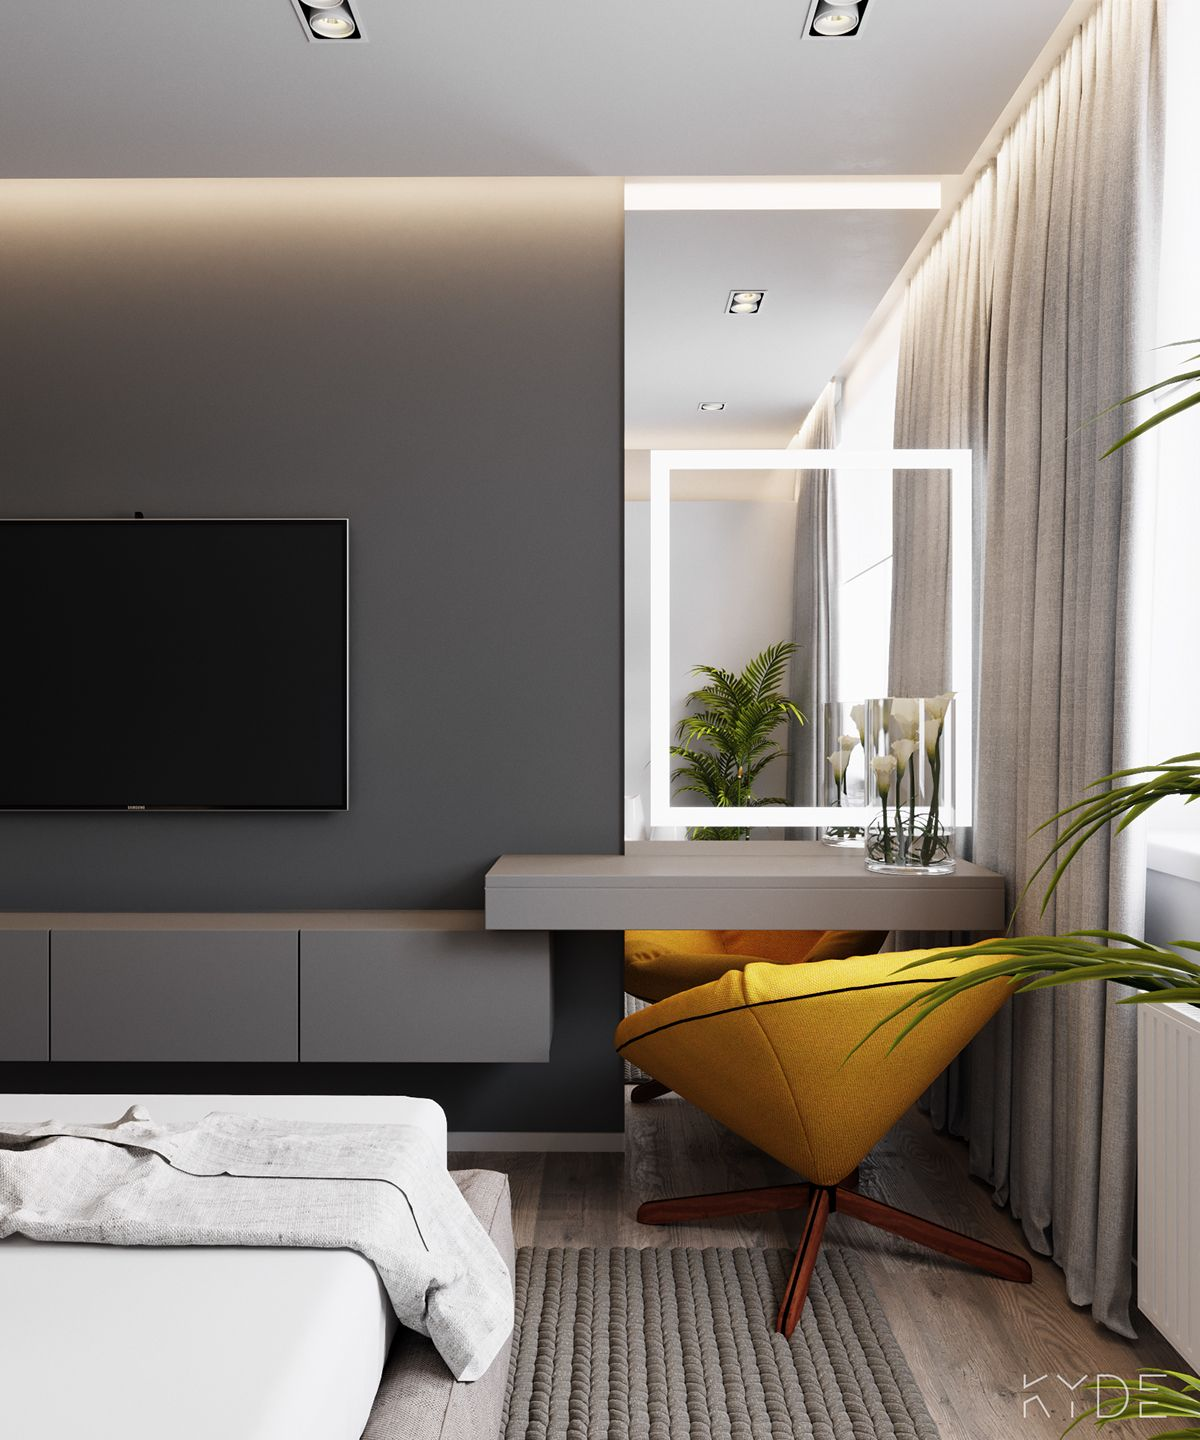 Even if interior design is your vocation